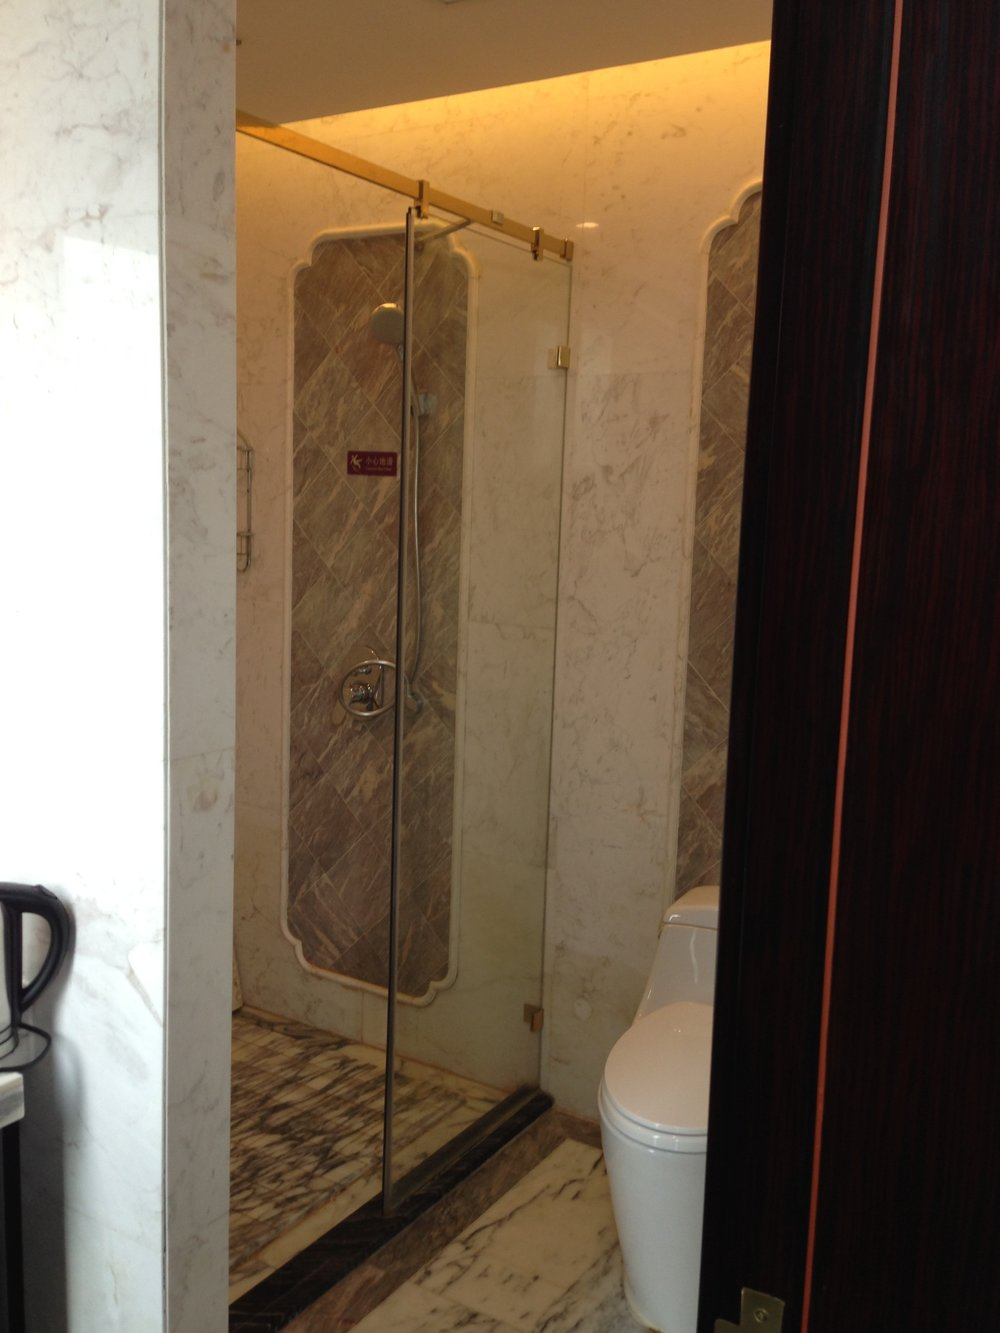 Marble-lined shower with glass doors.